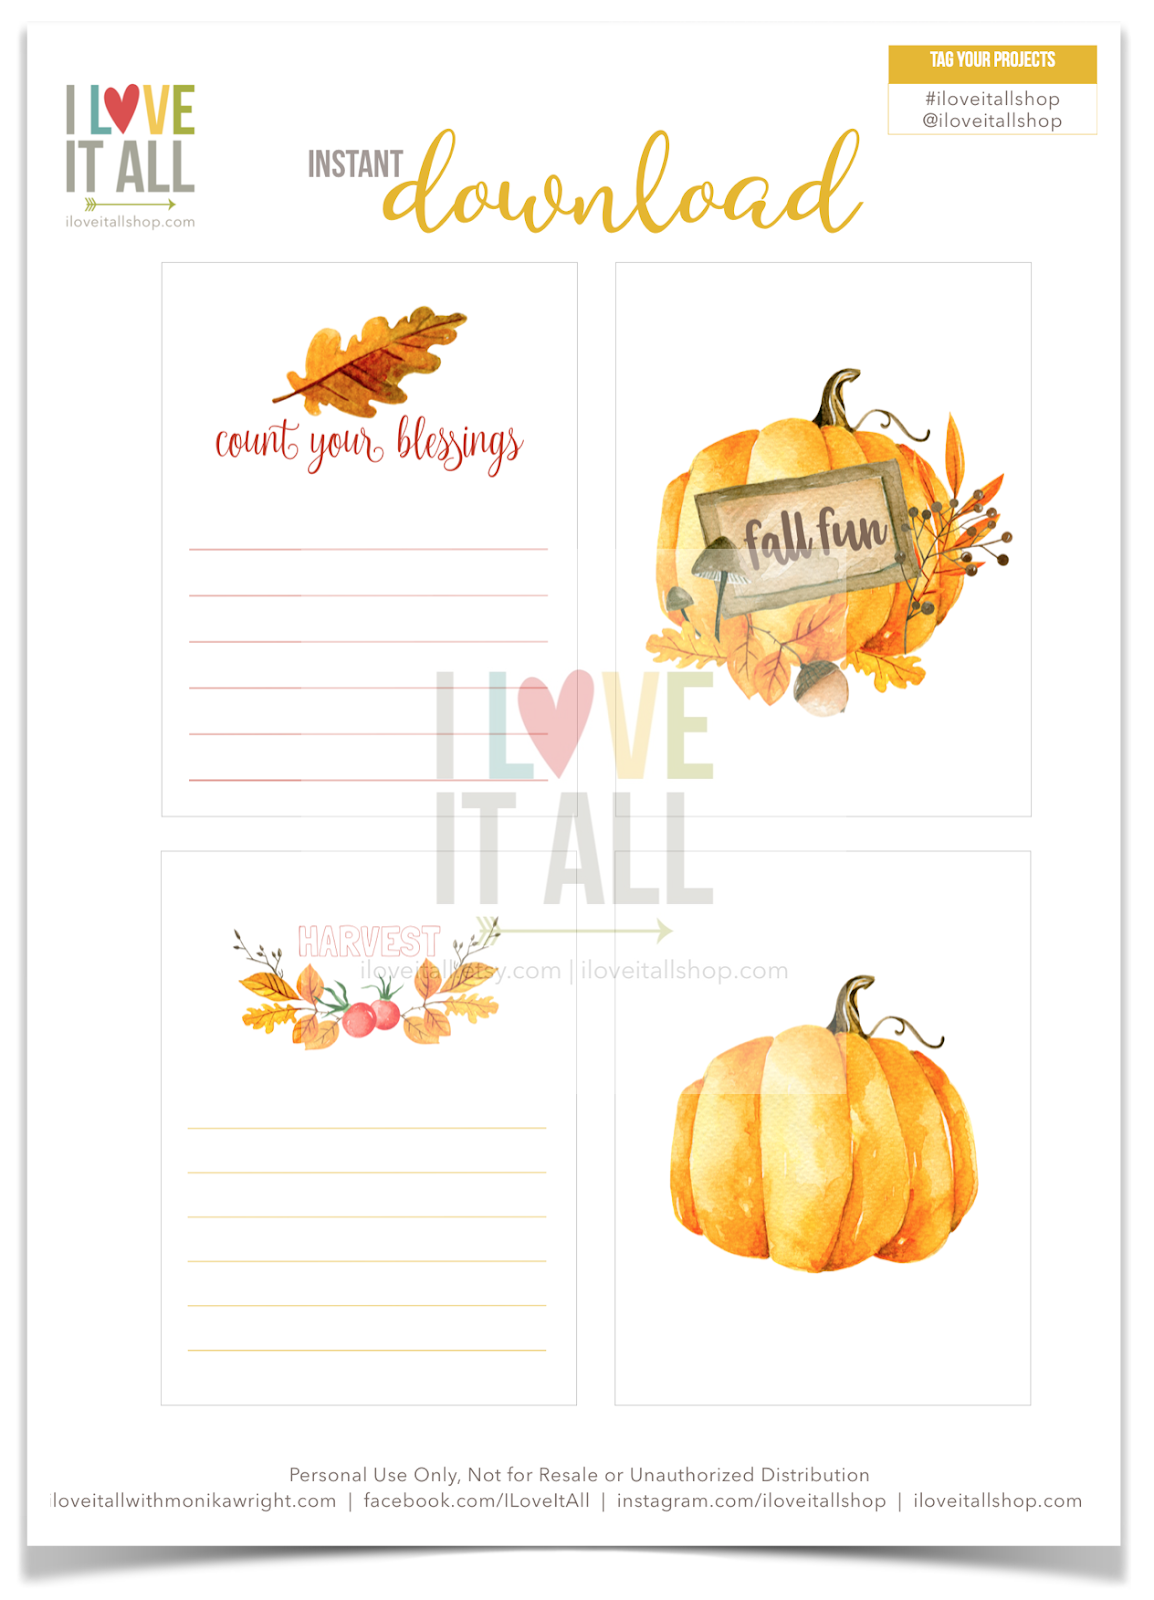 #Count Your Blessings #Fall Fun #Harvest #journaling cards #planner supplies #printable #download #iloveitallshop